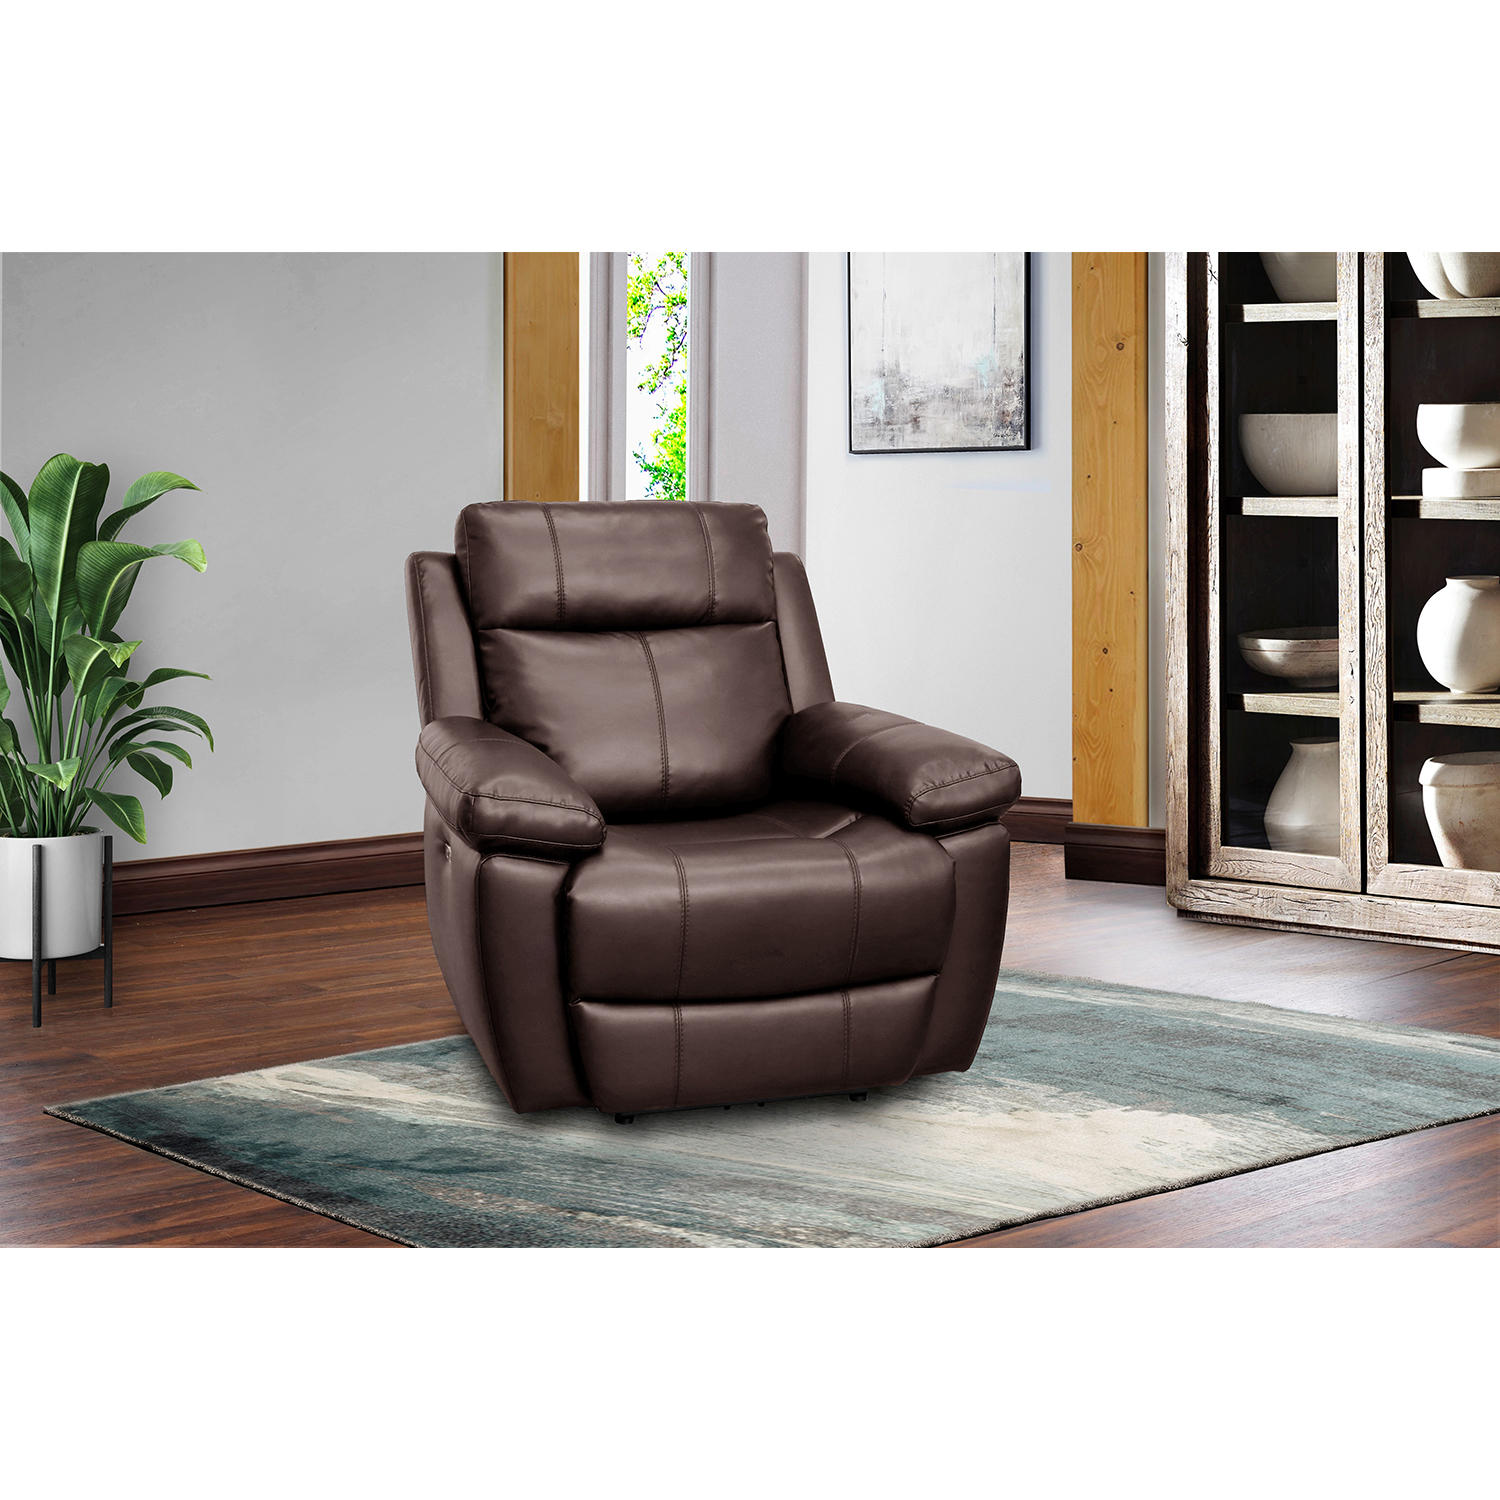 Jacob Power Recliner with Power Adjustable Headrest